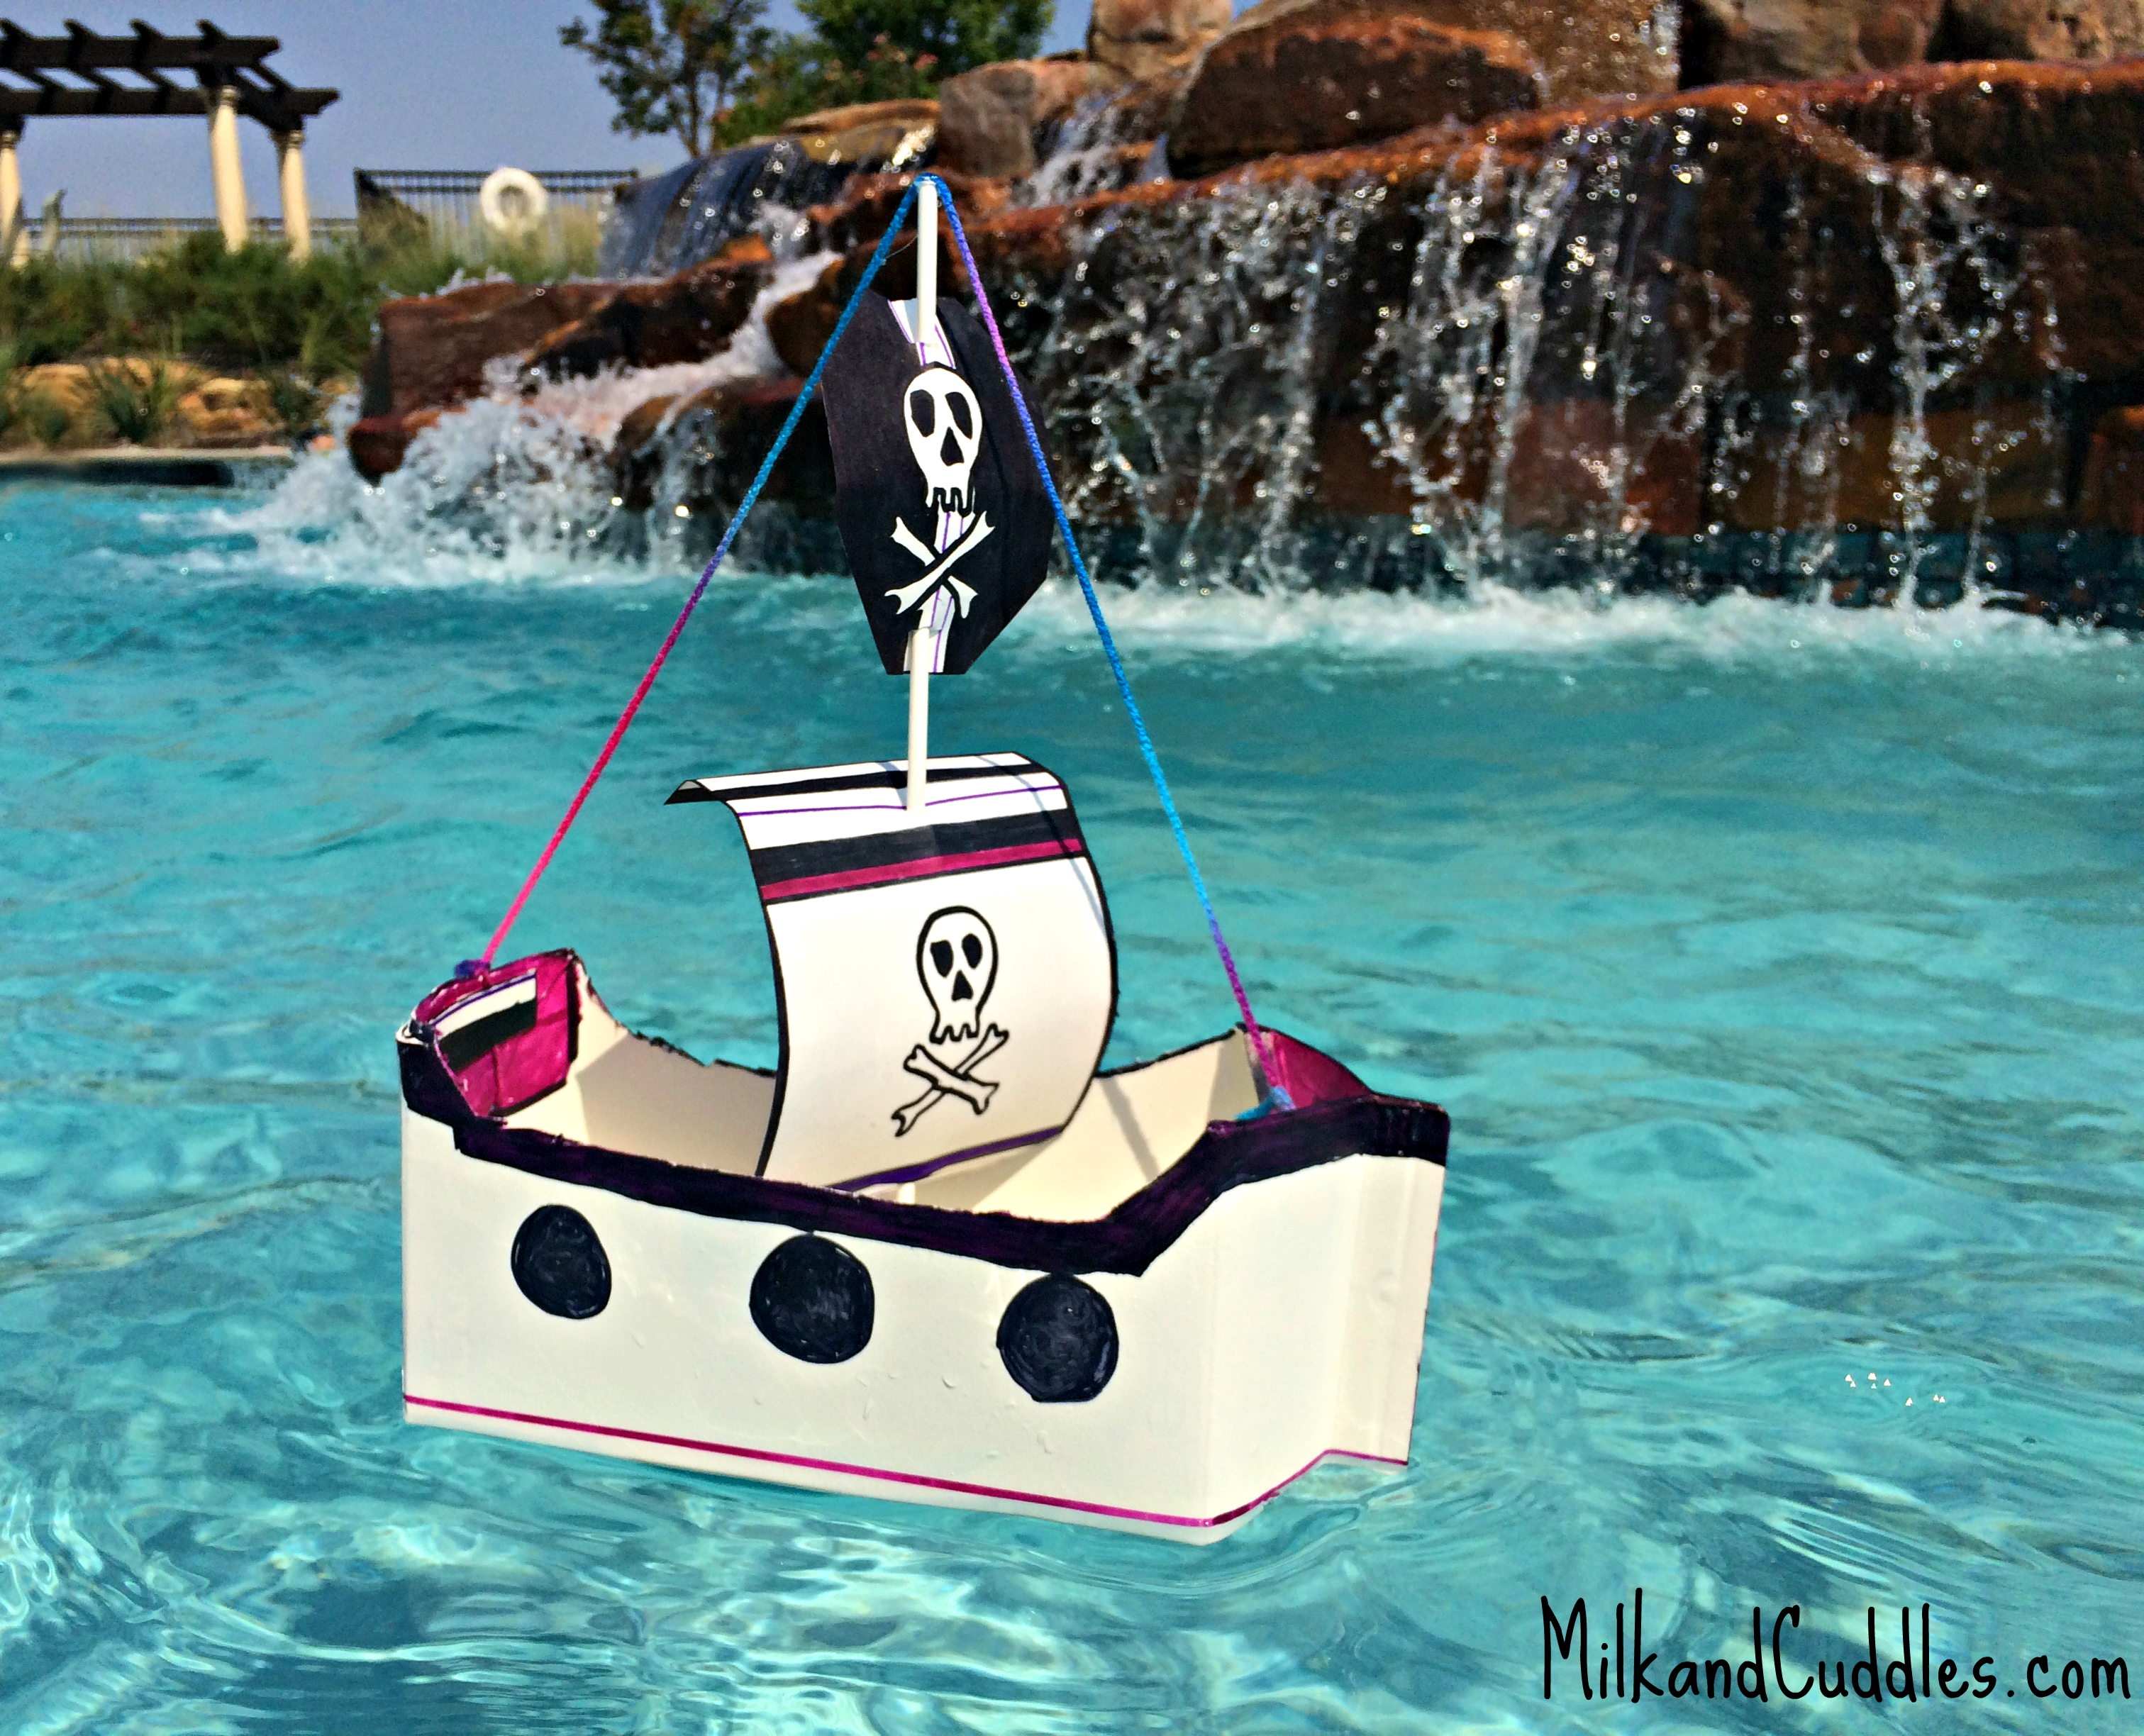 Tips On How To Decorate Your Home Make A Floating Pirate Ship Out Of Recyclables